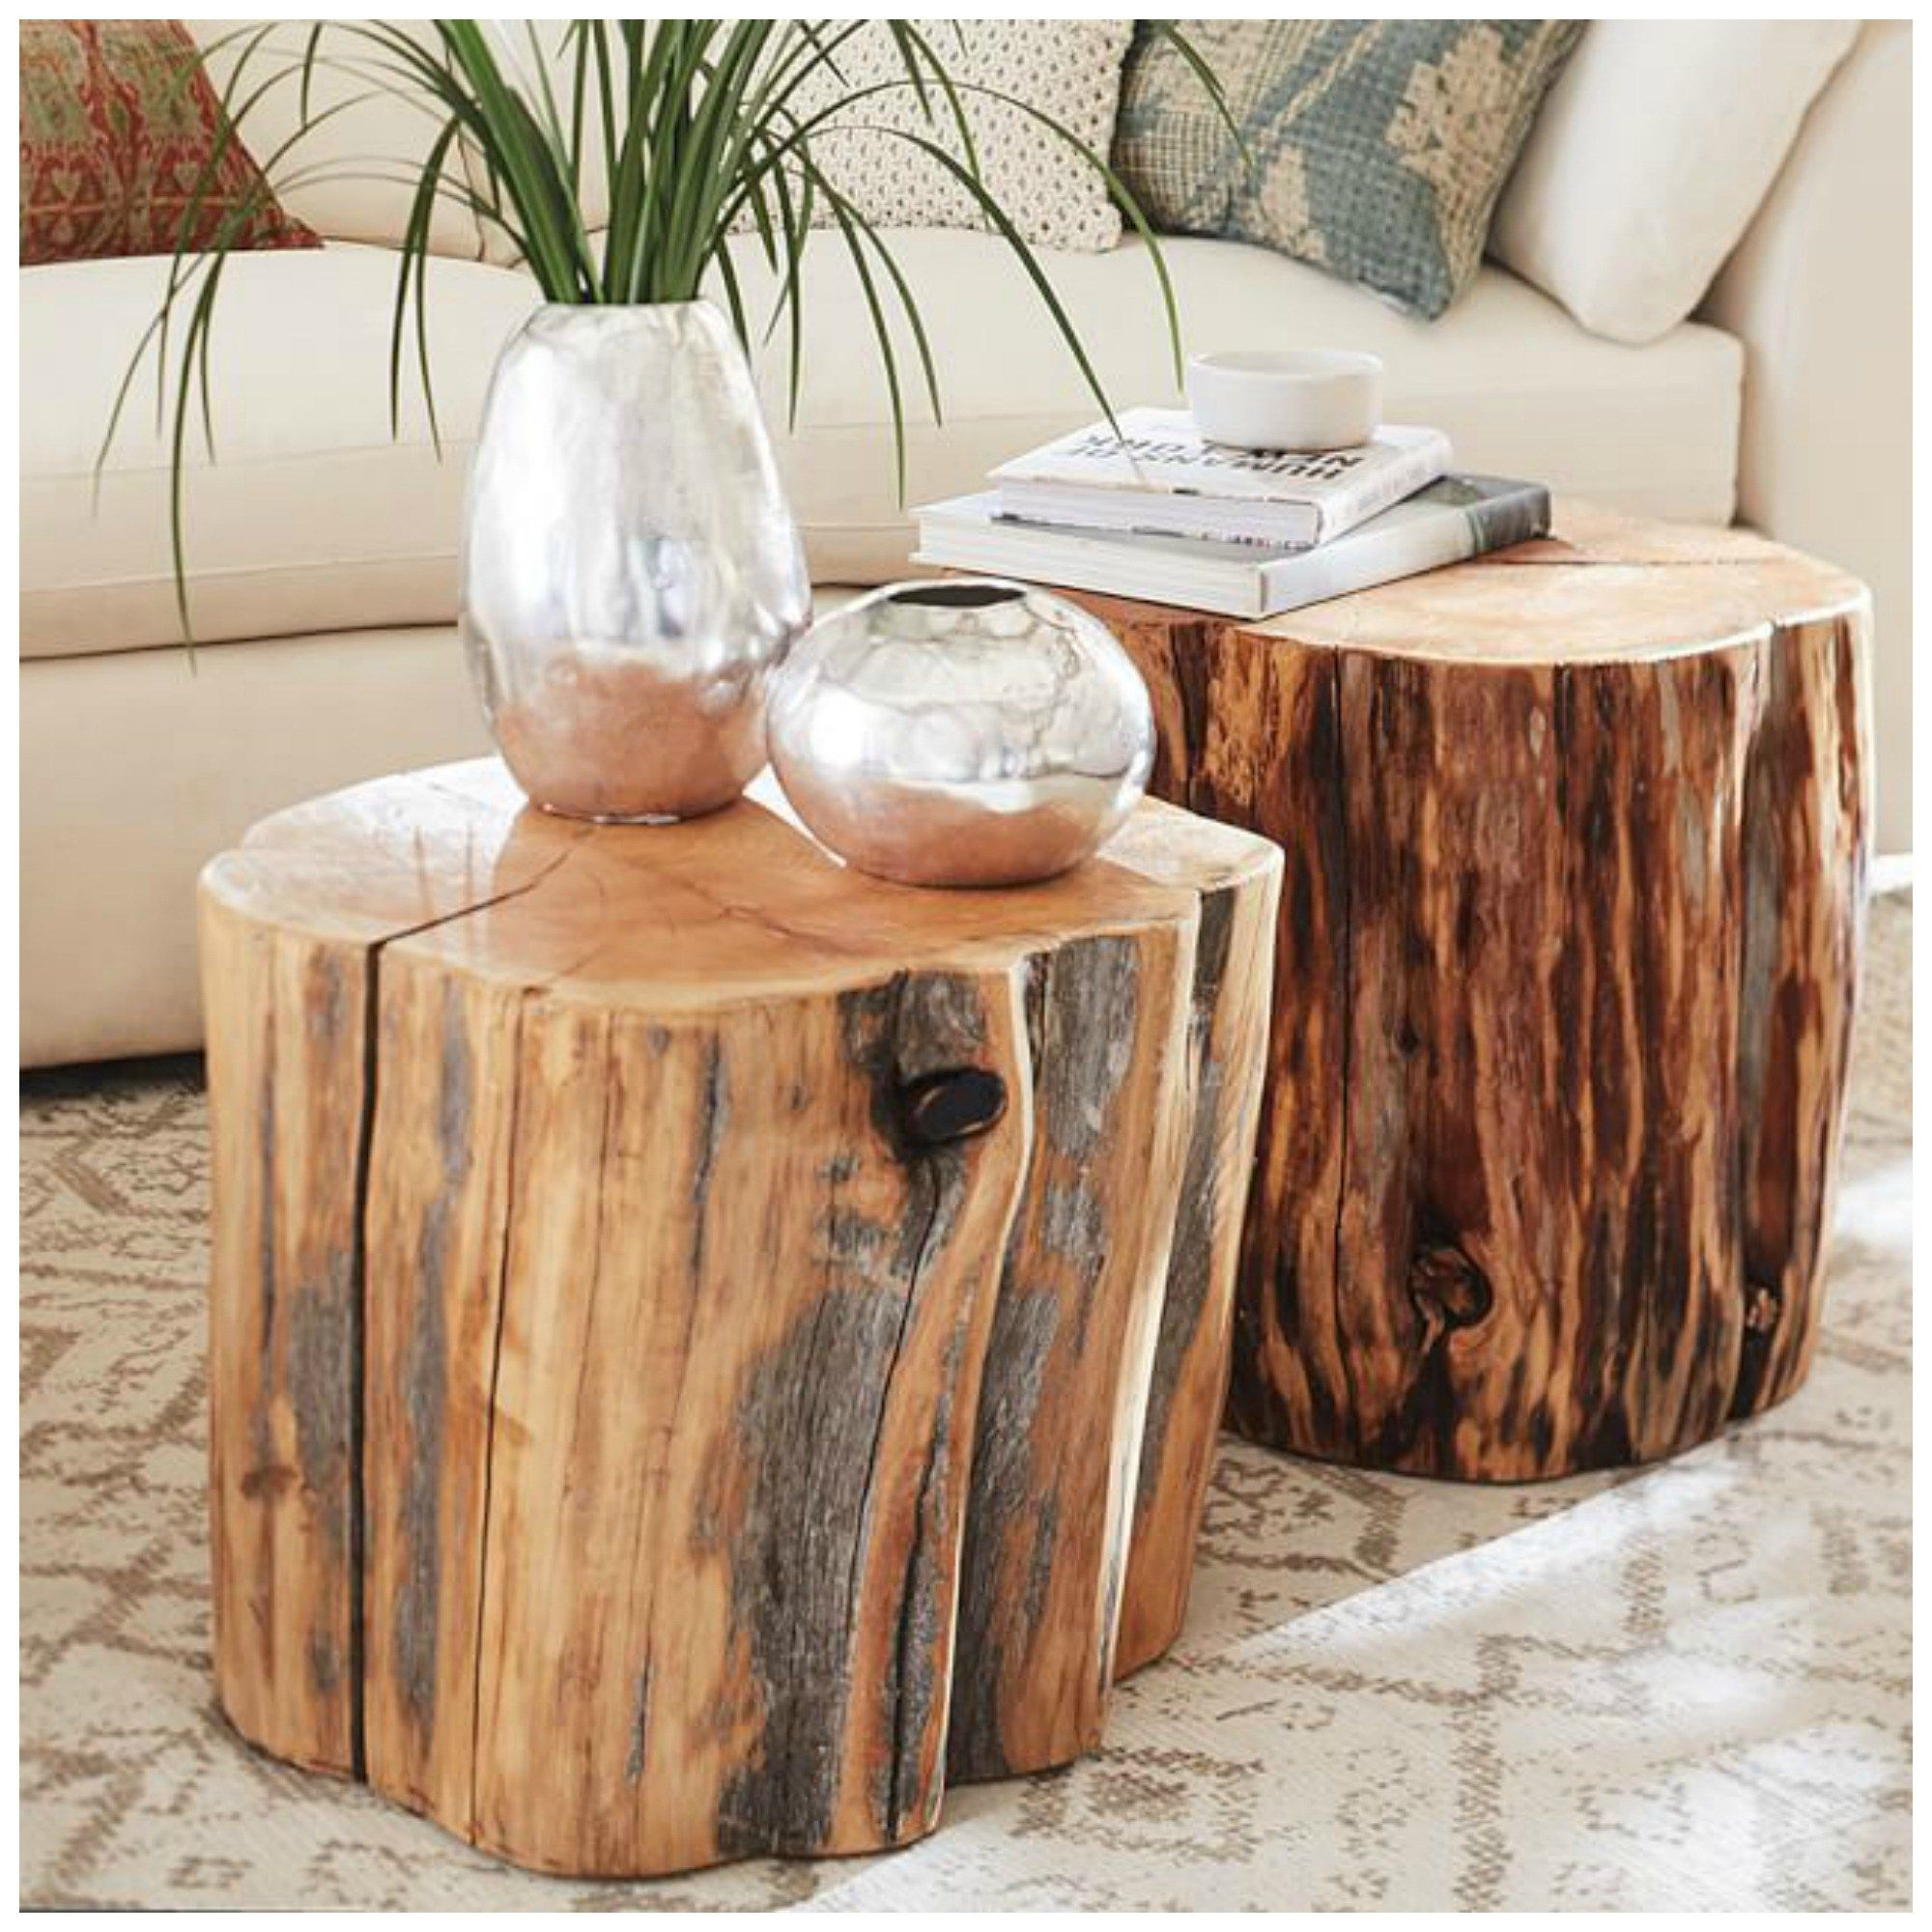 Reclaimed Wood Stump End Tables Pottern Barn Splurge For The Home Pinterest Wood